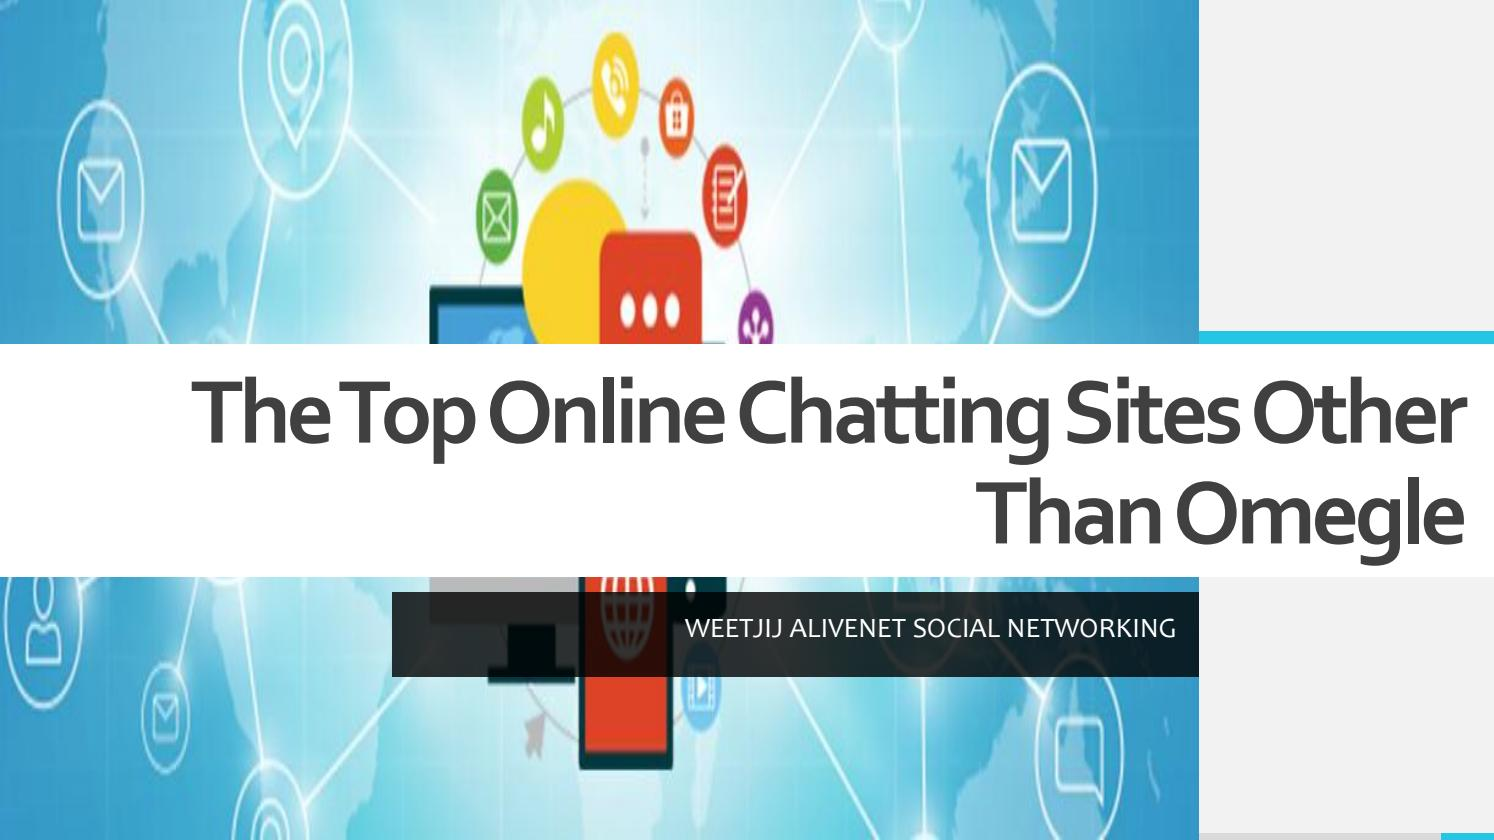 Top online chatting sites